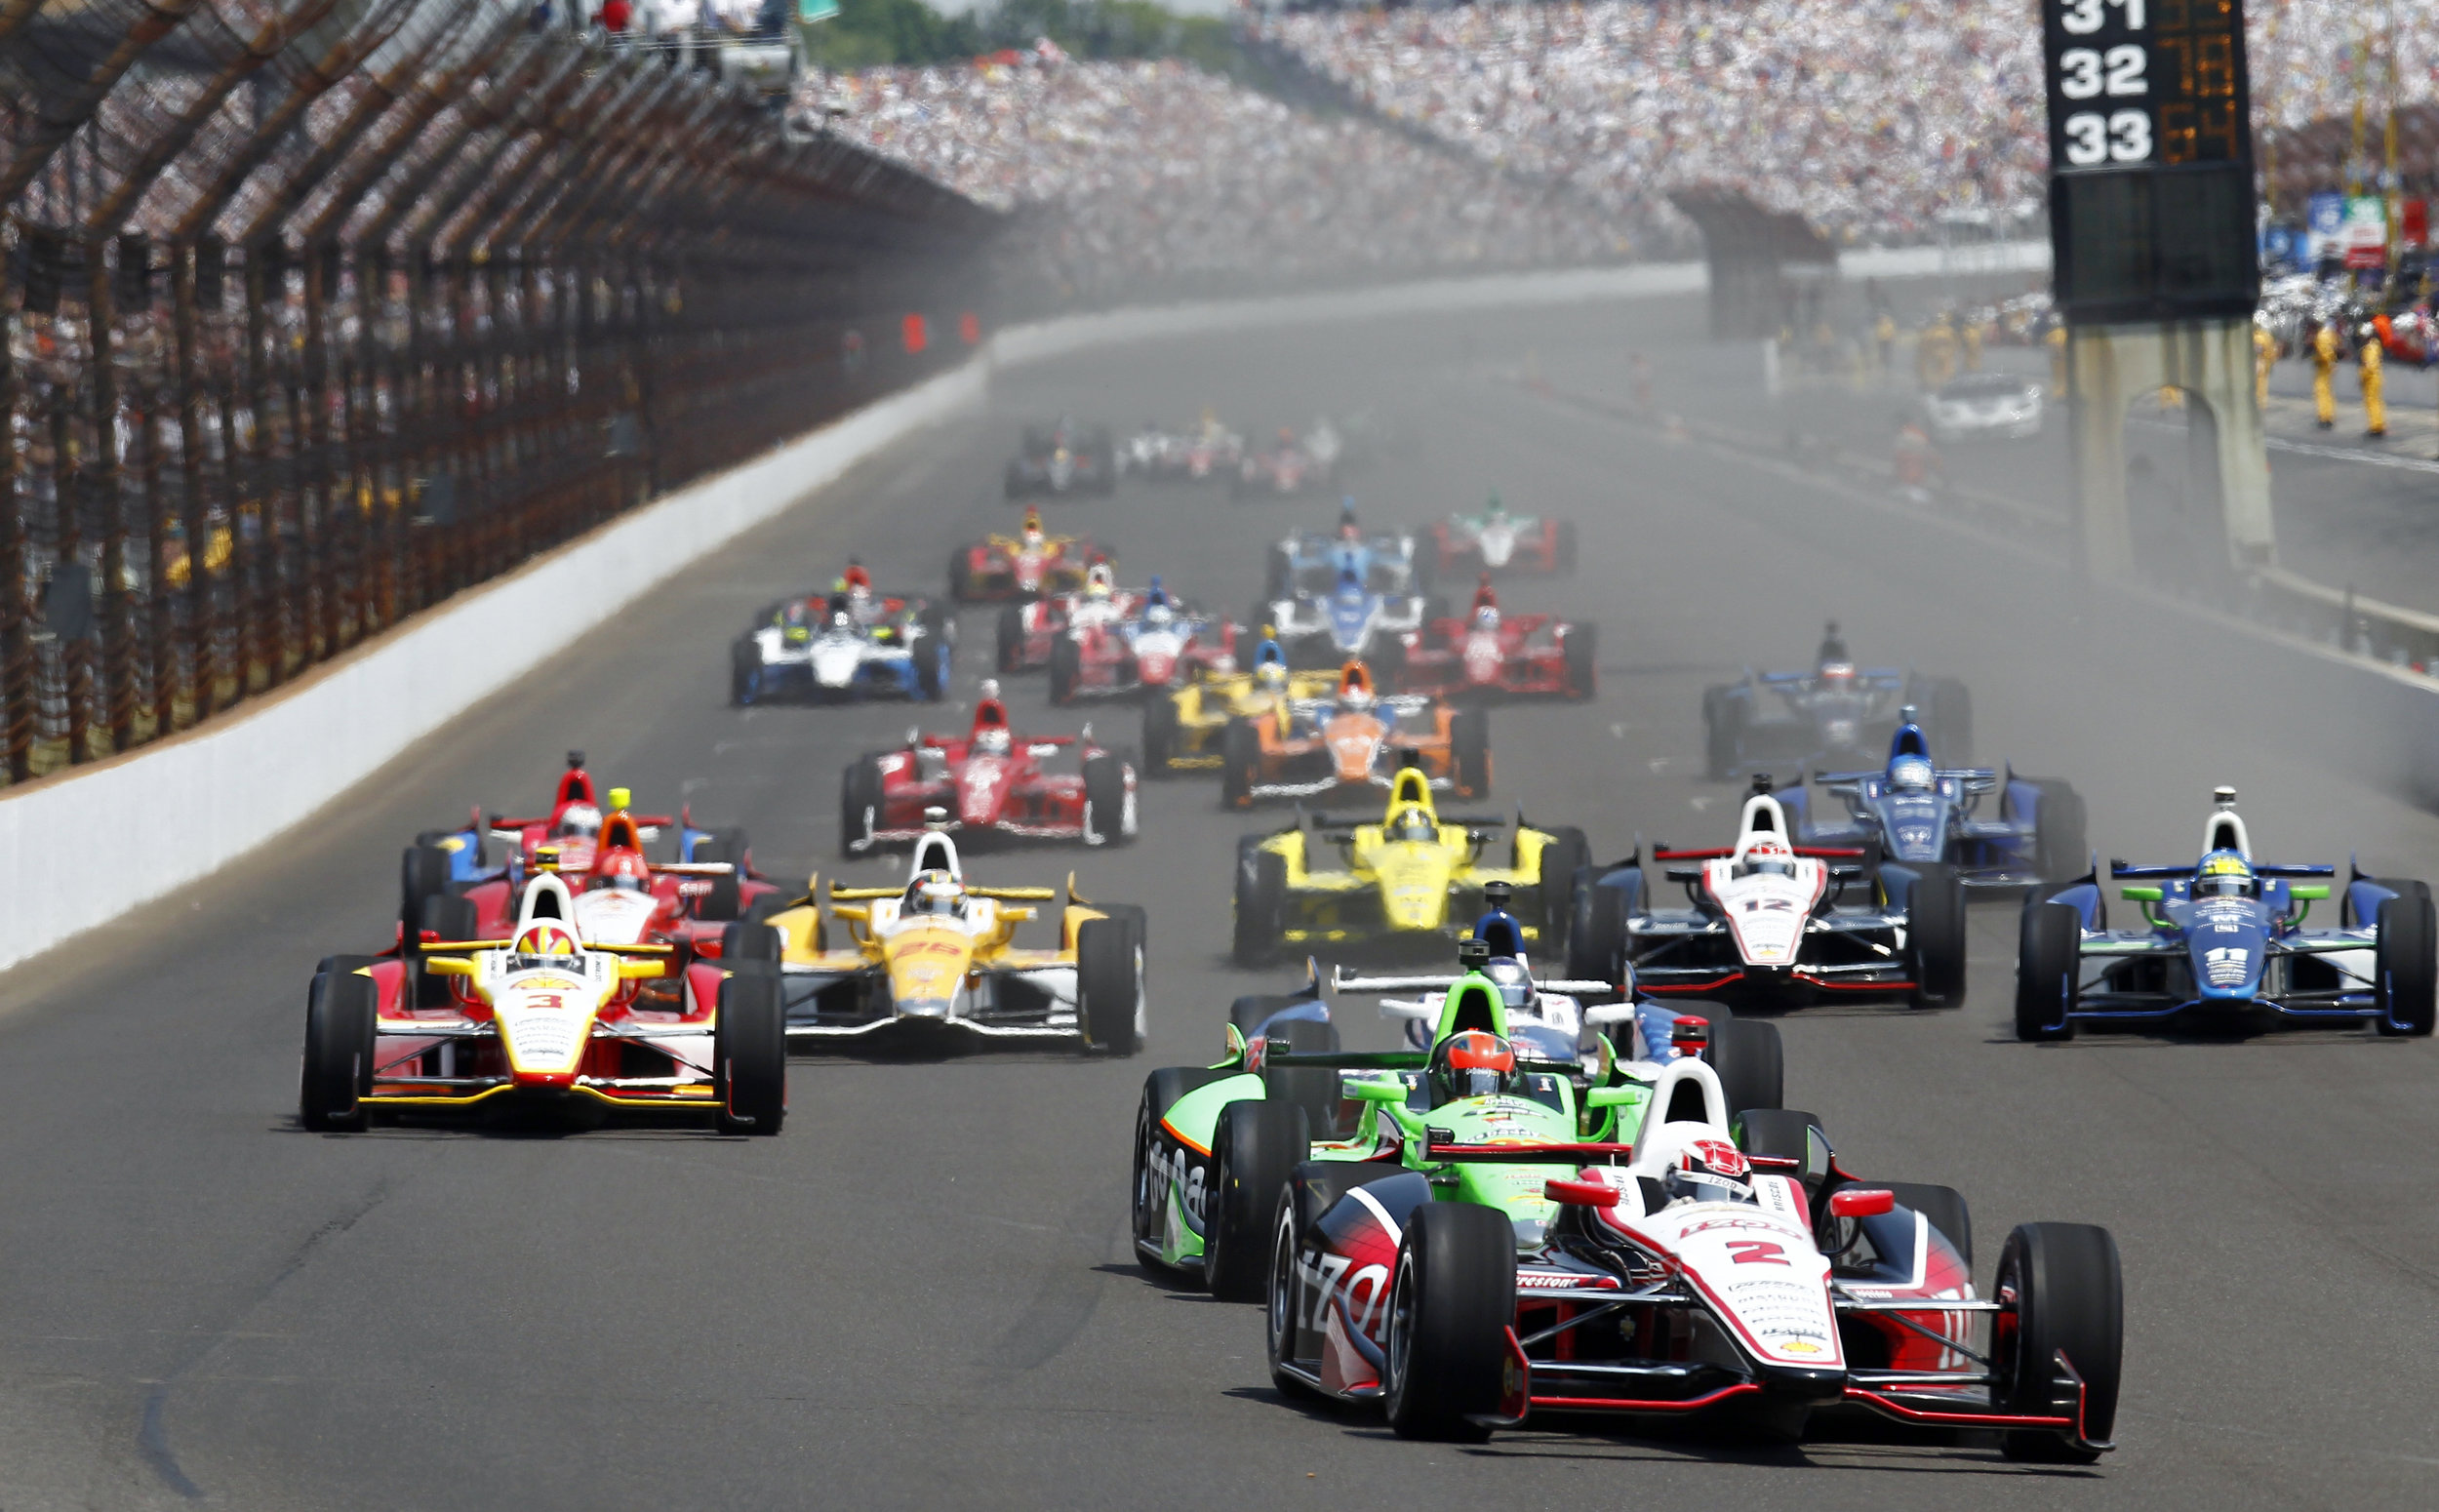 2020 Indy 500 Entry List.Indy 500 2020 Ticket Travel Packages Sports Travel Tickets